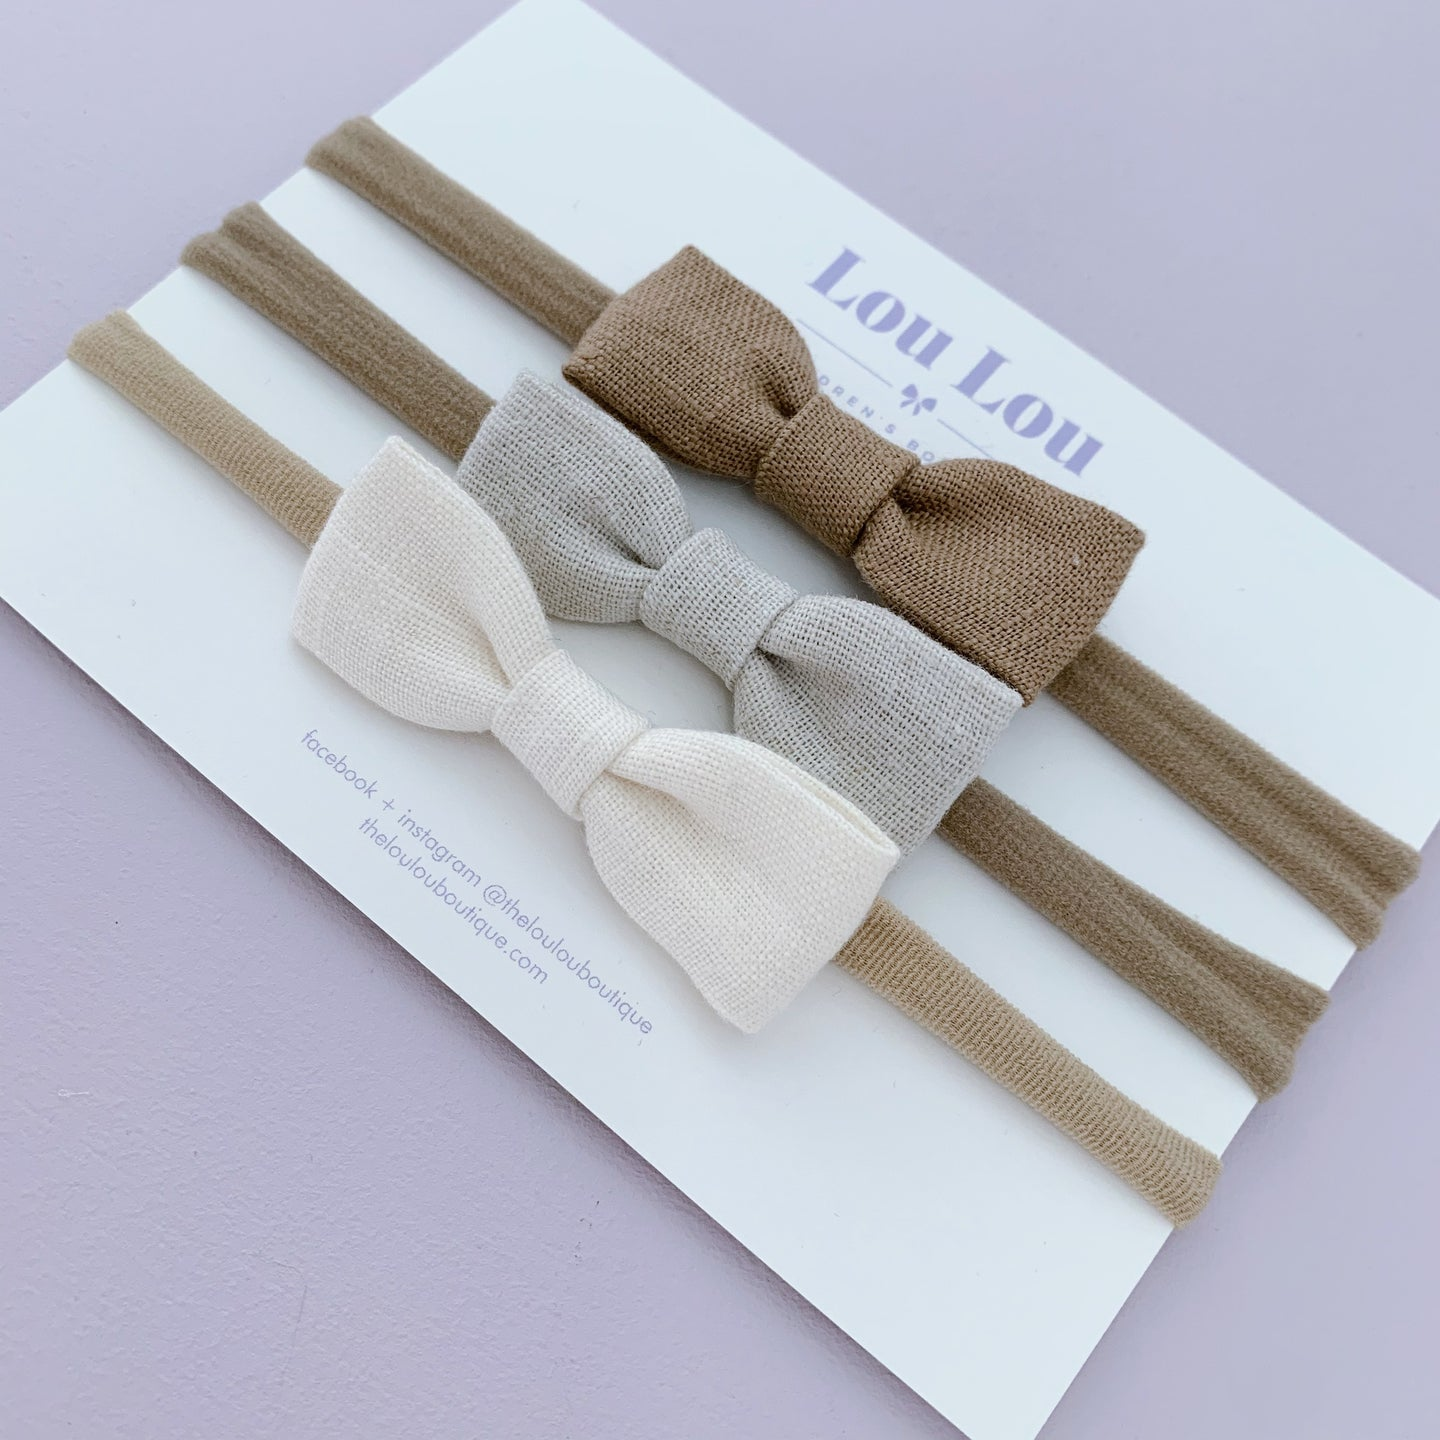 3 Petite Bows || headbands || bundle #49